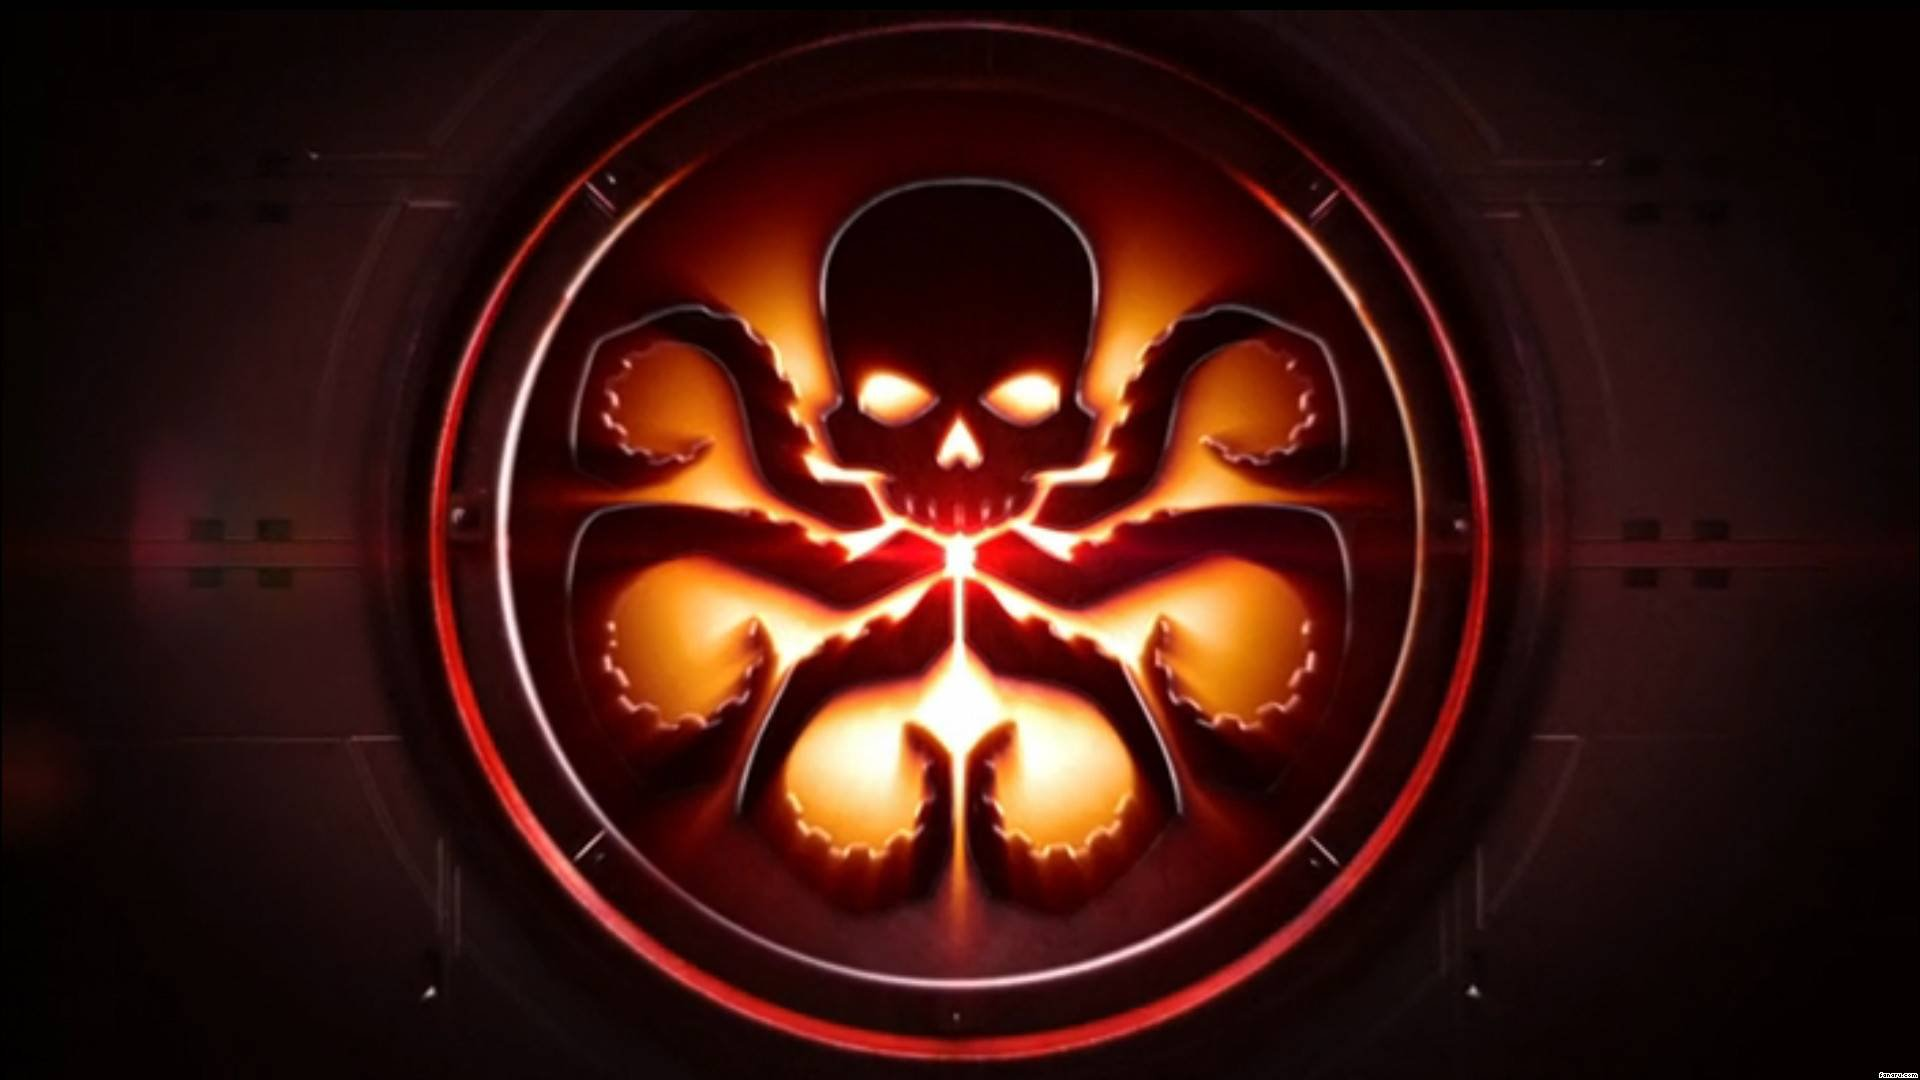 AGENTS OF SHIELD action drama sci fi marvel comic series crime 35 1920x1080